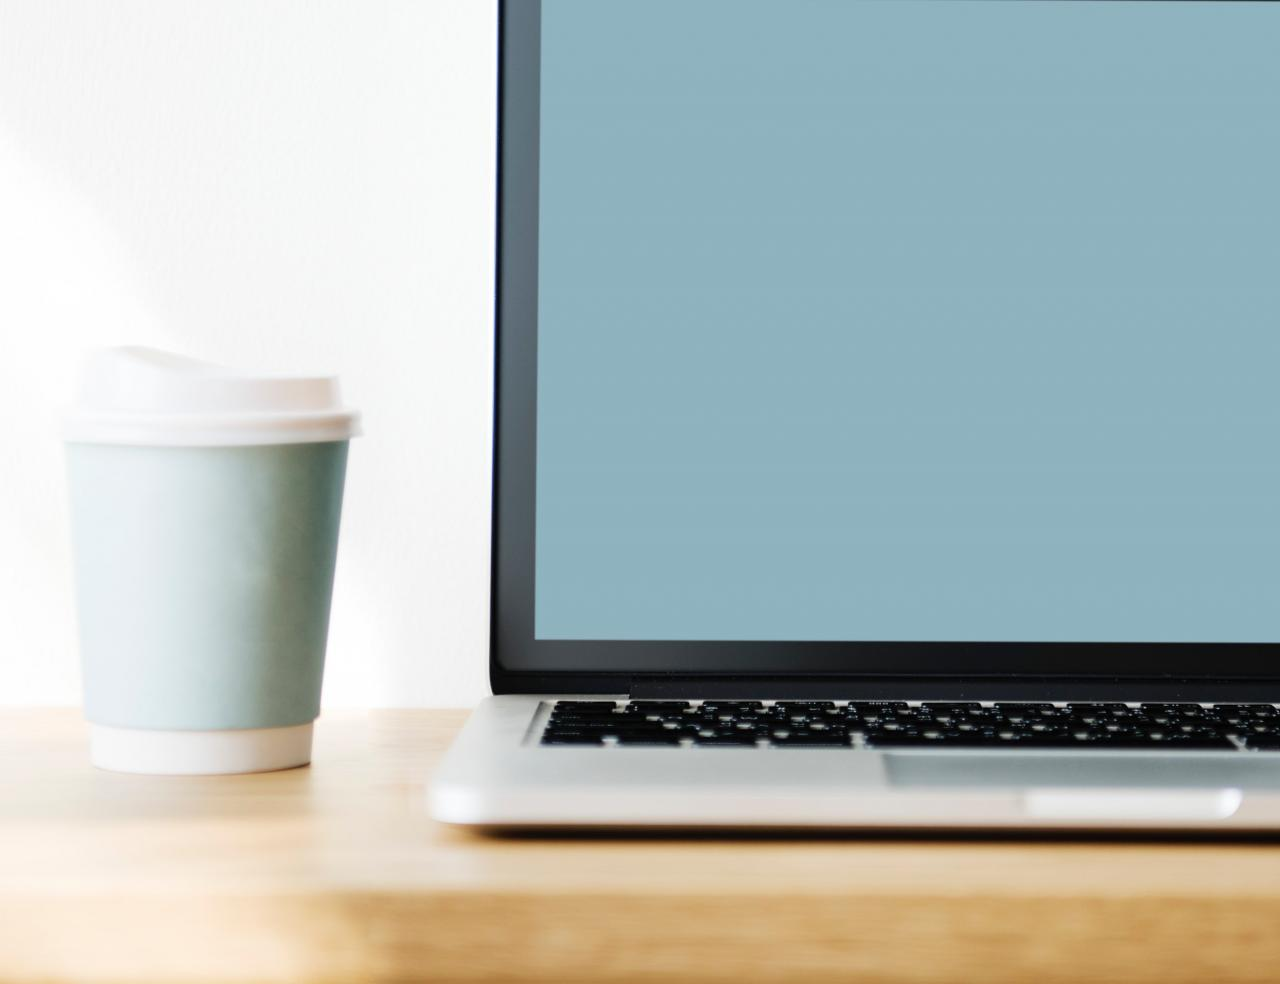 Macbook Pro Beside Gray Disposable Cup on Brown Wooden Surface, portable, monitor, screen, table, HQ Photo